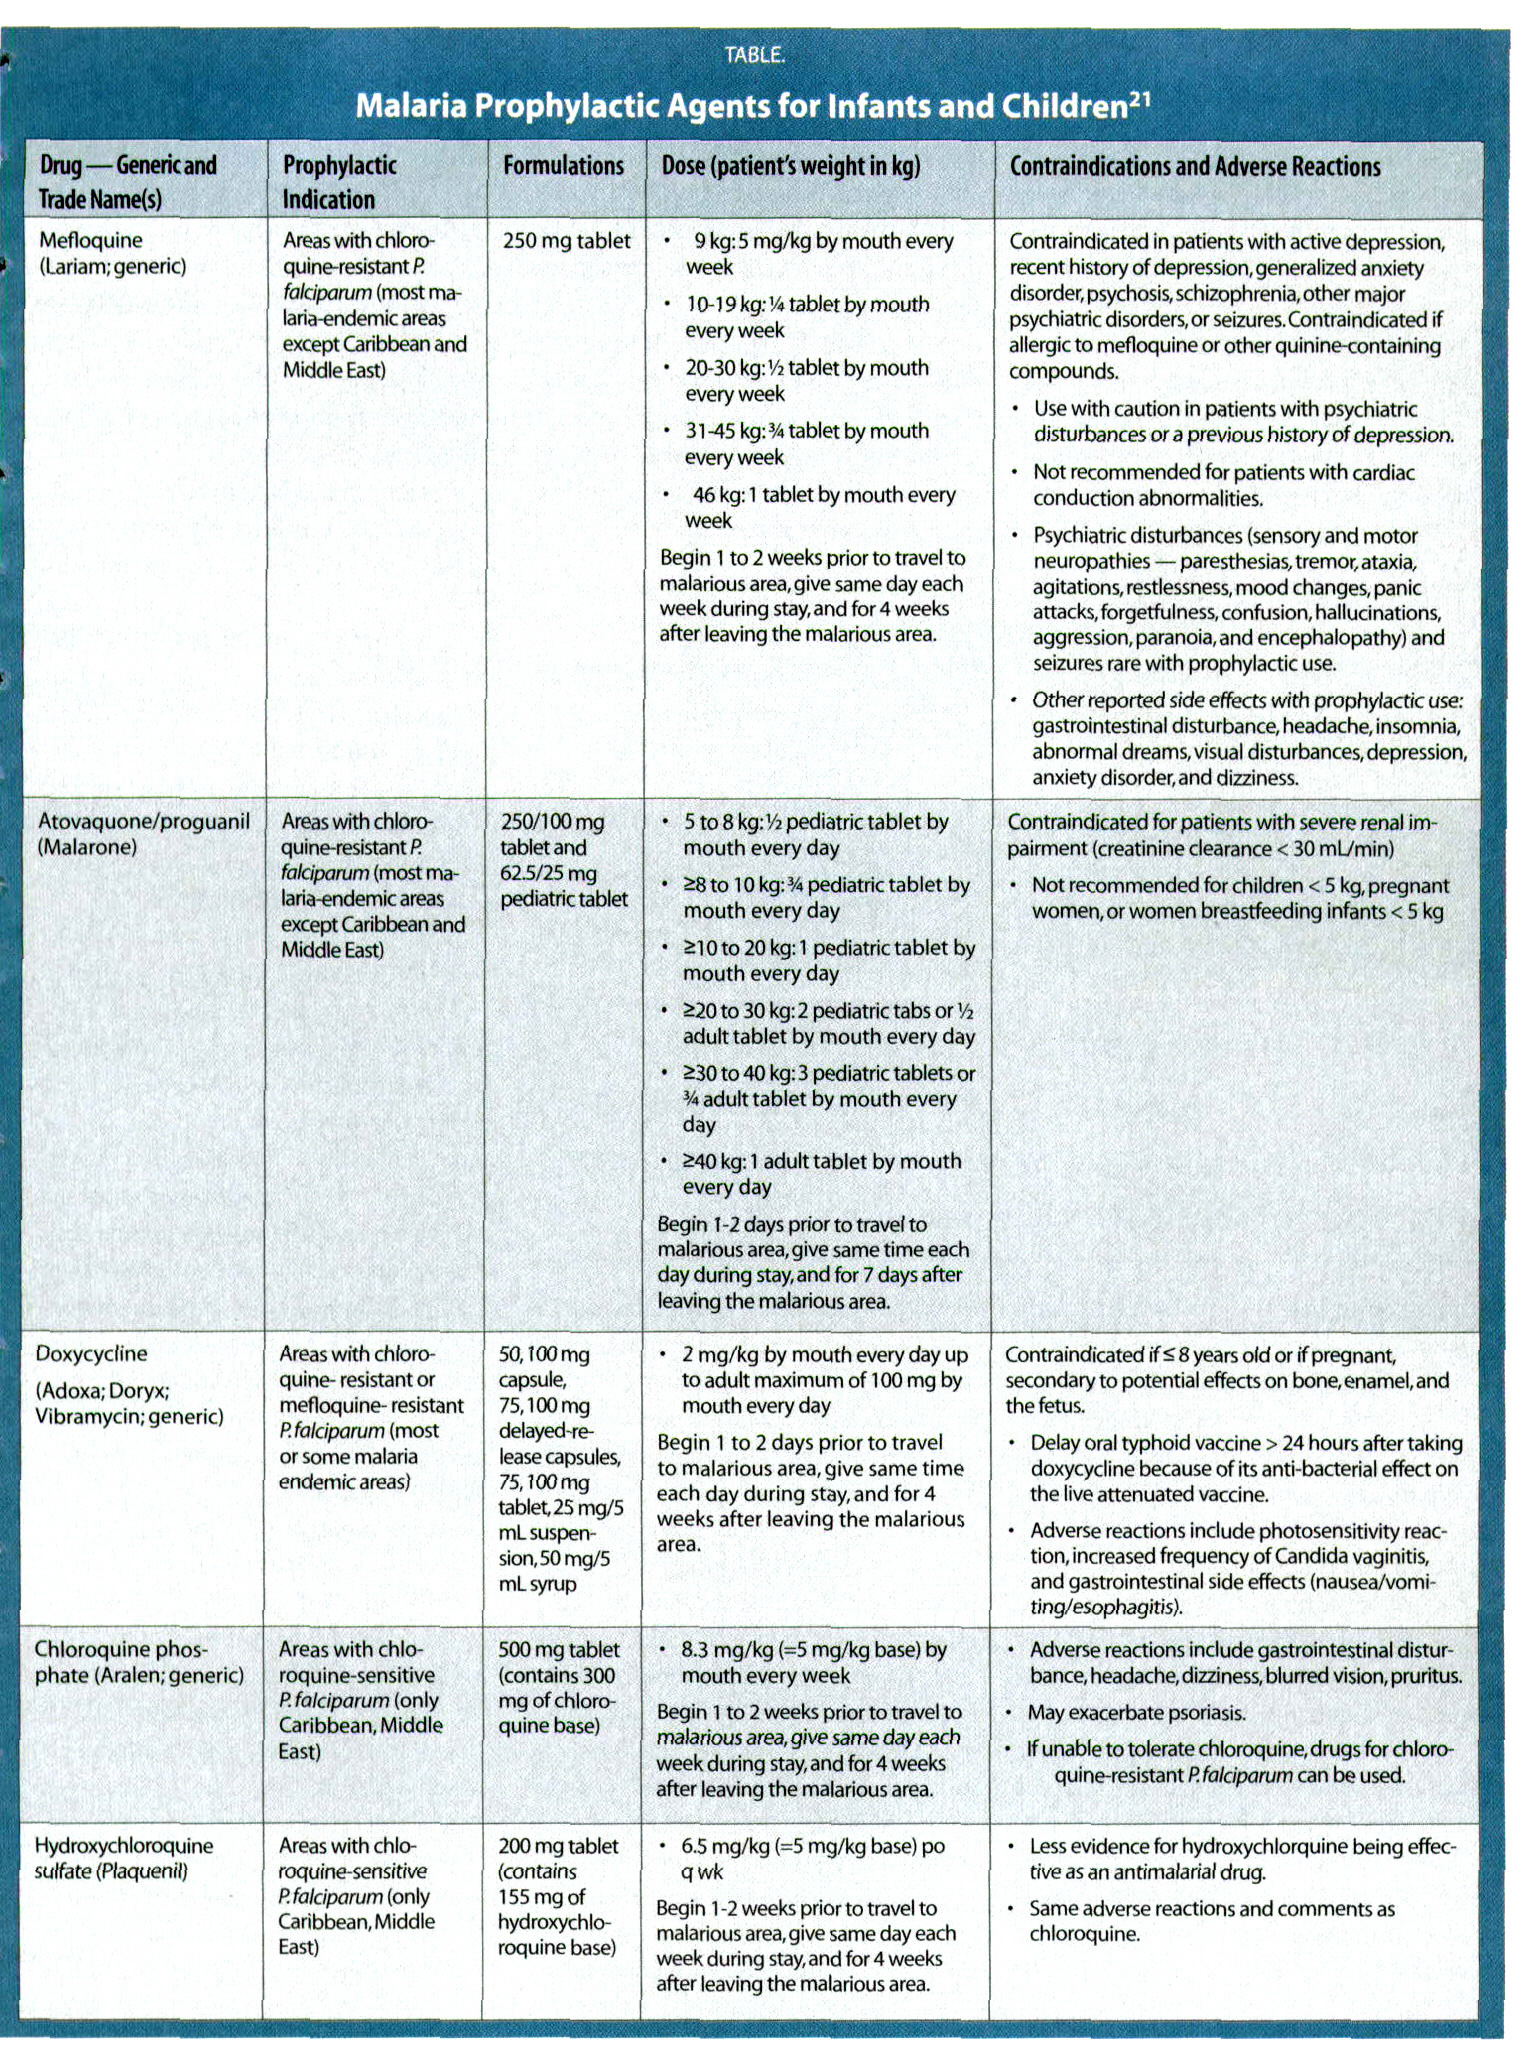 TABLE.Malaria Prophylactic Agents for Infants and Children21